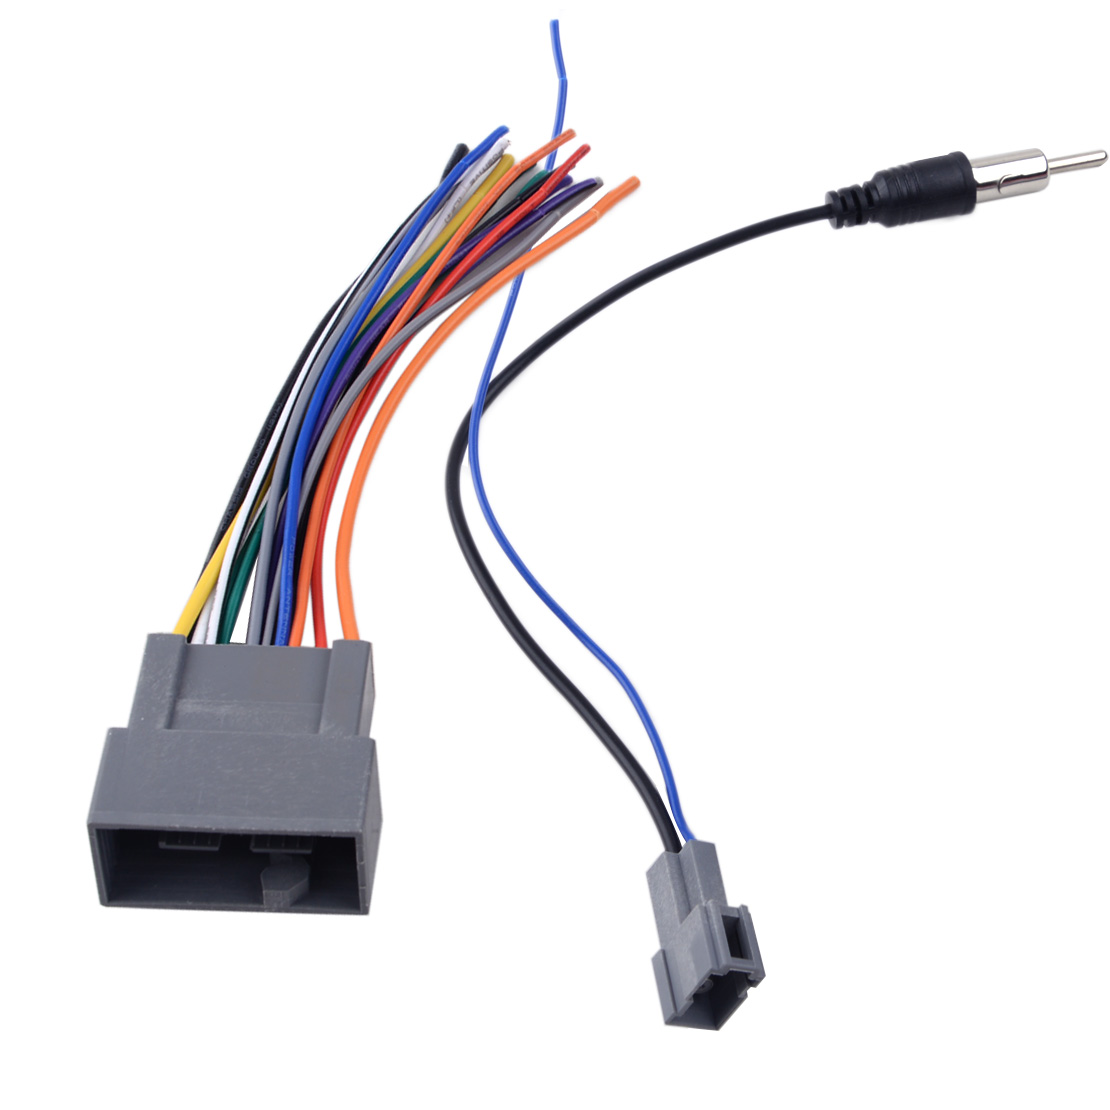 DWCX 2 pcs <font><b>Radio</b></font> Stereo Wire Wiring Harness Cable Antenna <font><b>Adapter</b></font> Fit For <font><b>Honda</b></font> Civic CRV Odyssey <font><b>Jazz</b></font> Acura TSX image